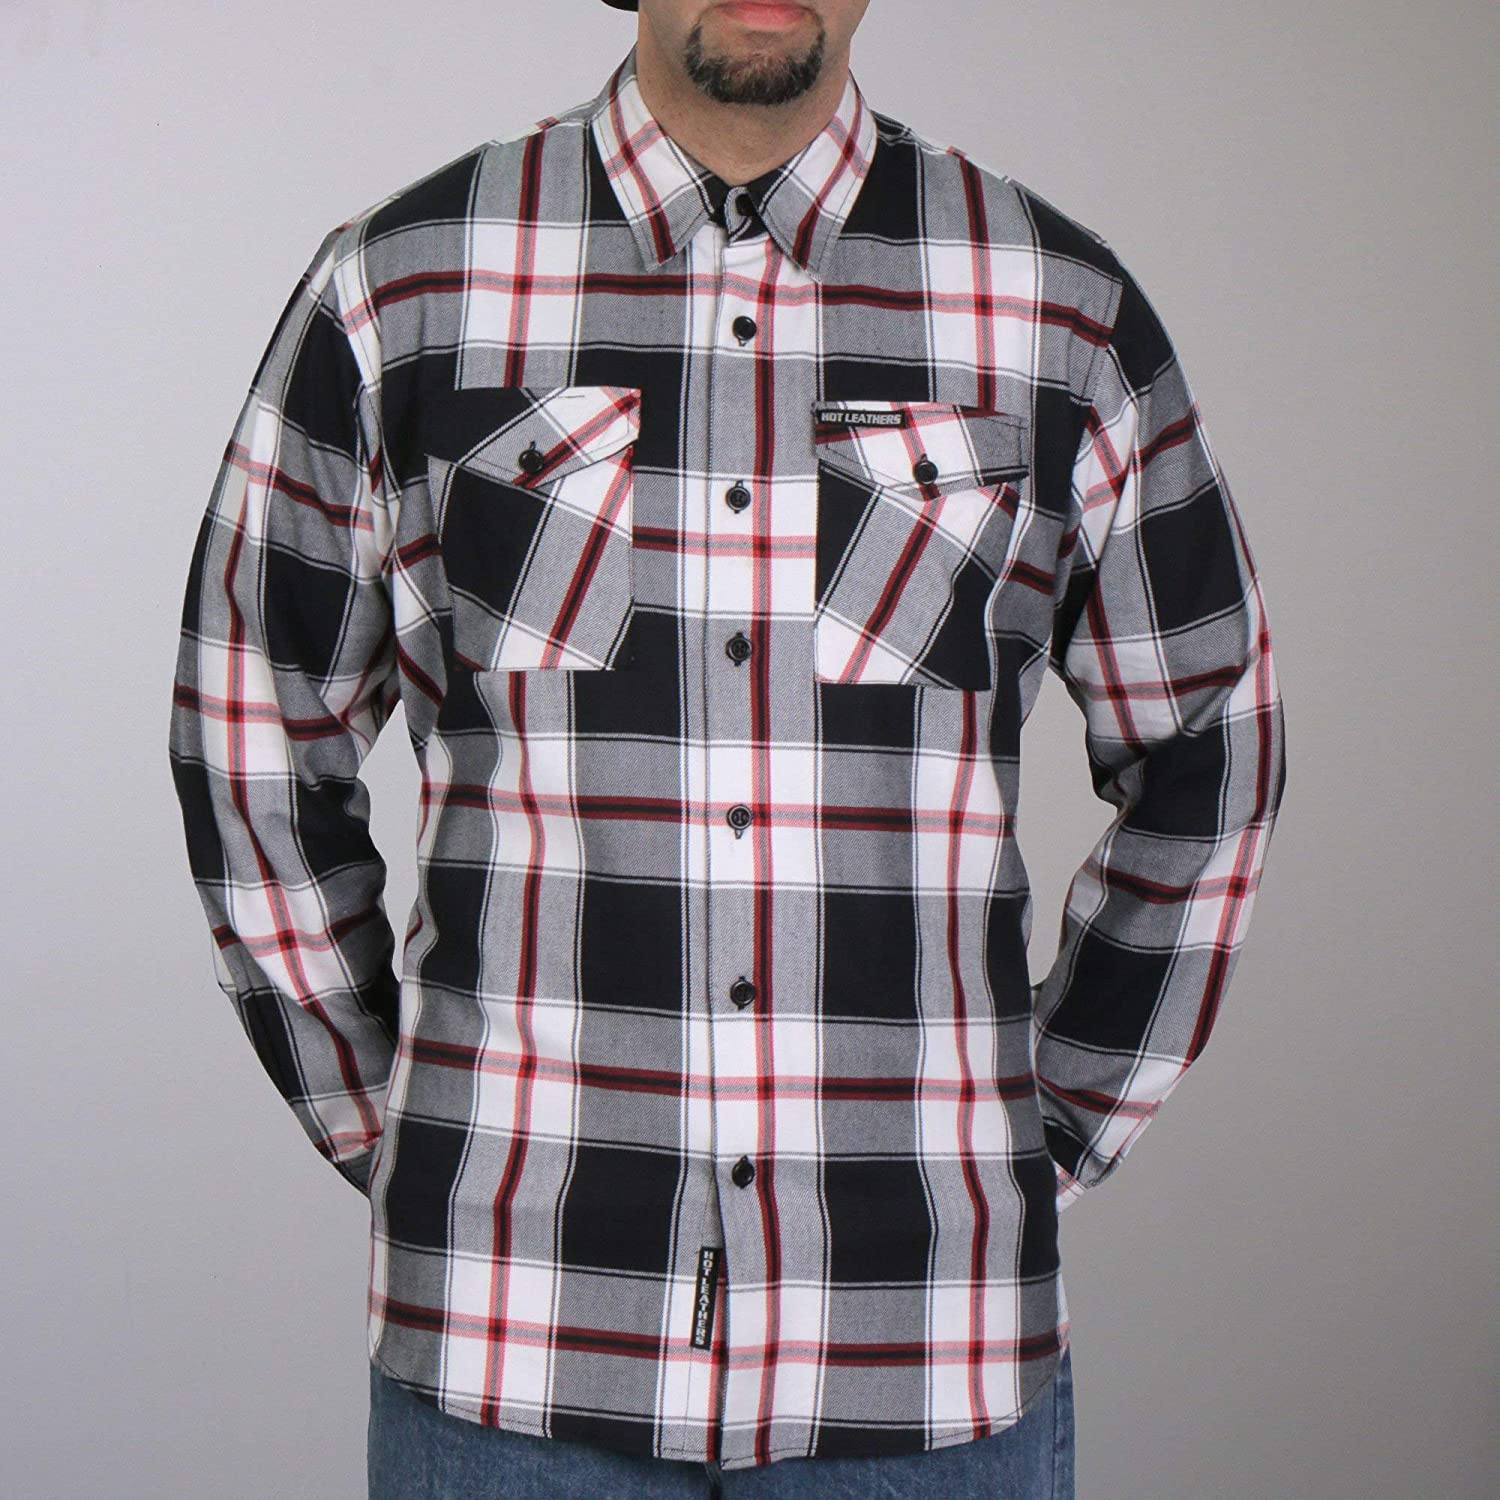 Hot Leathers FLM2003 Mens Black White and Red Long Sleeve Flannel Shirt